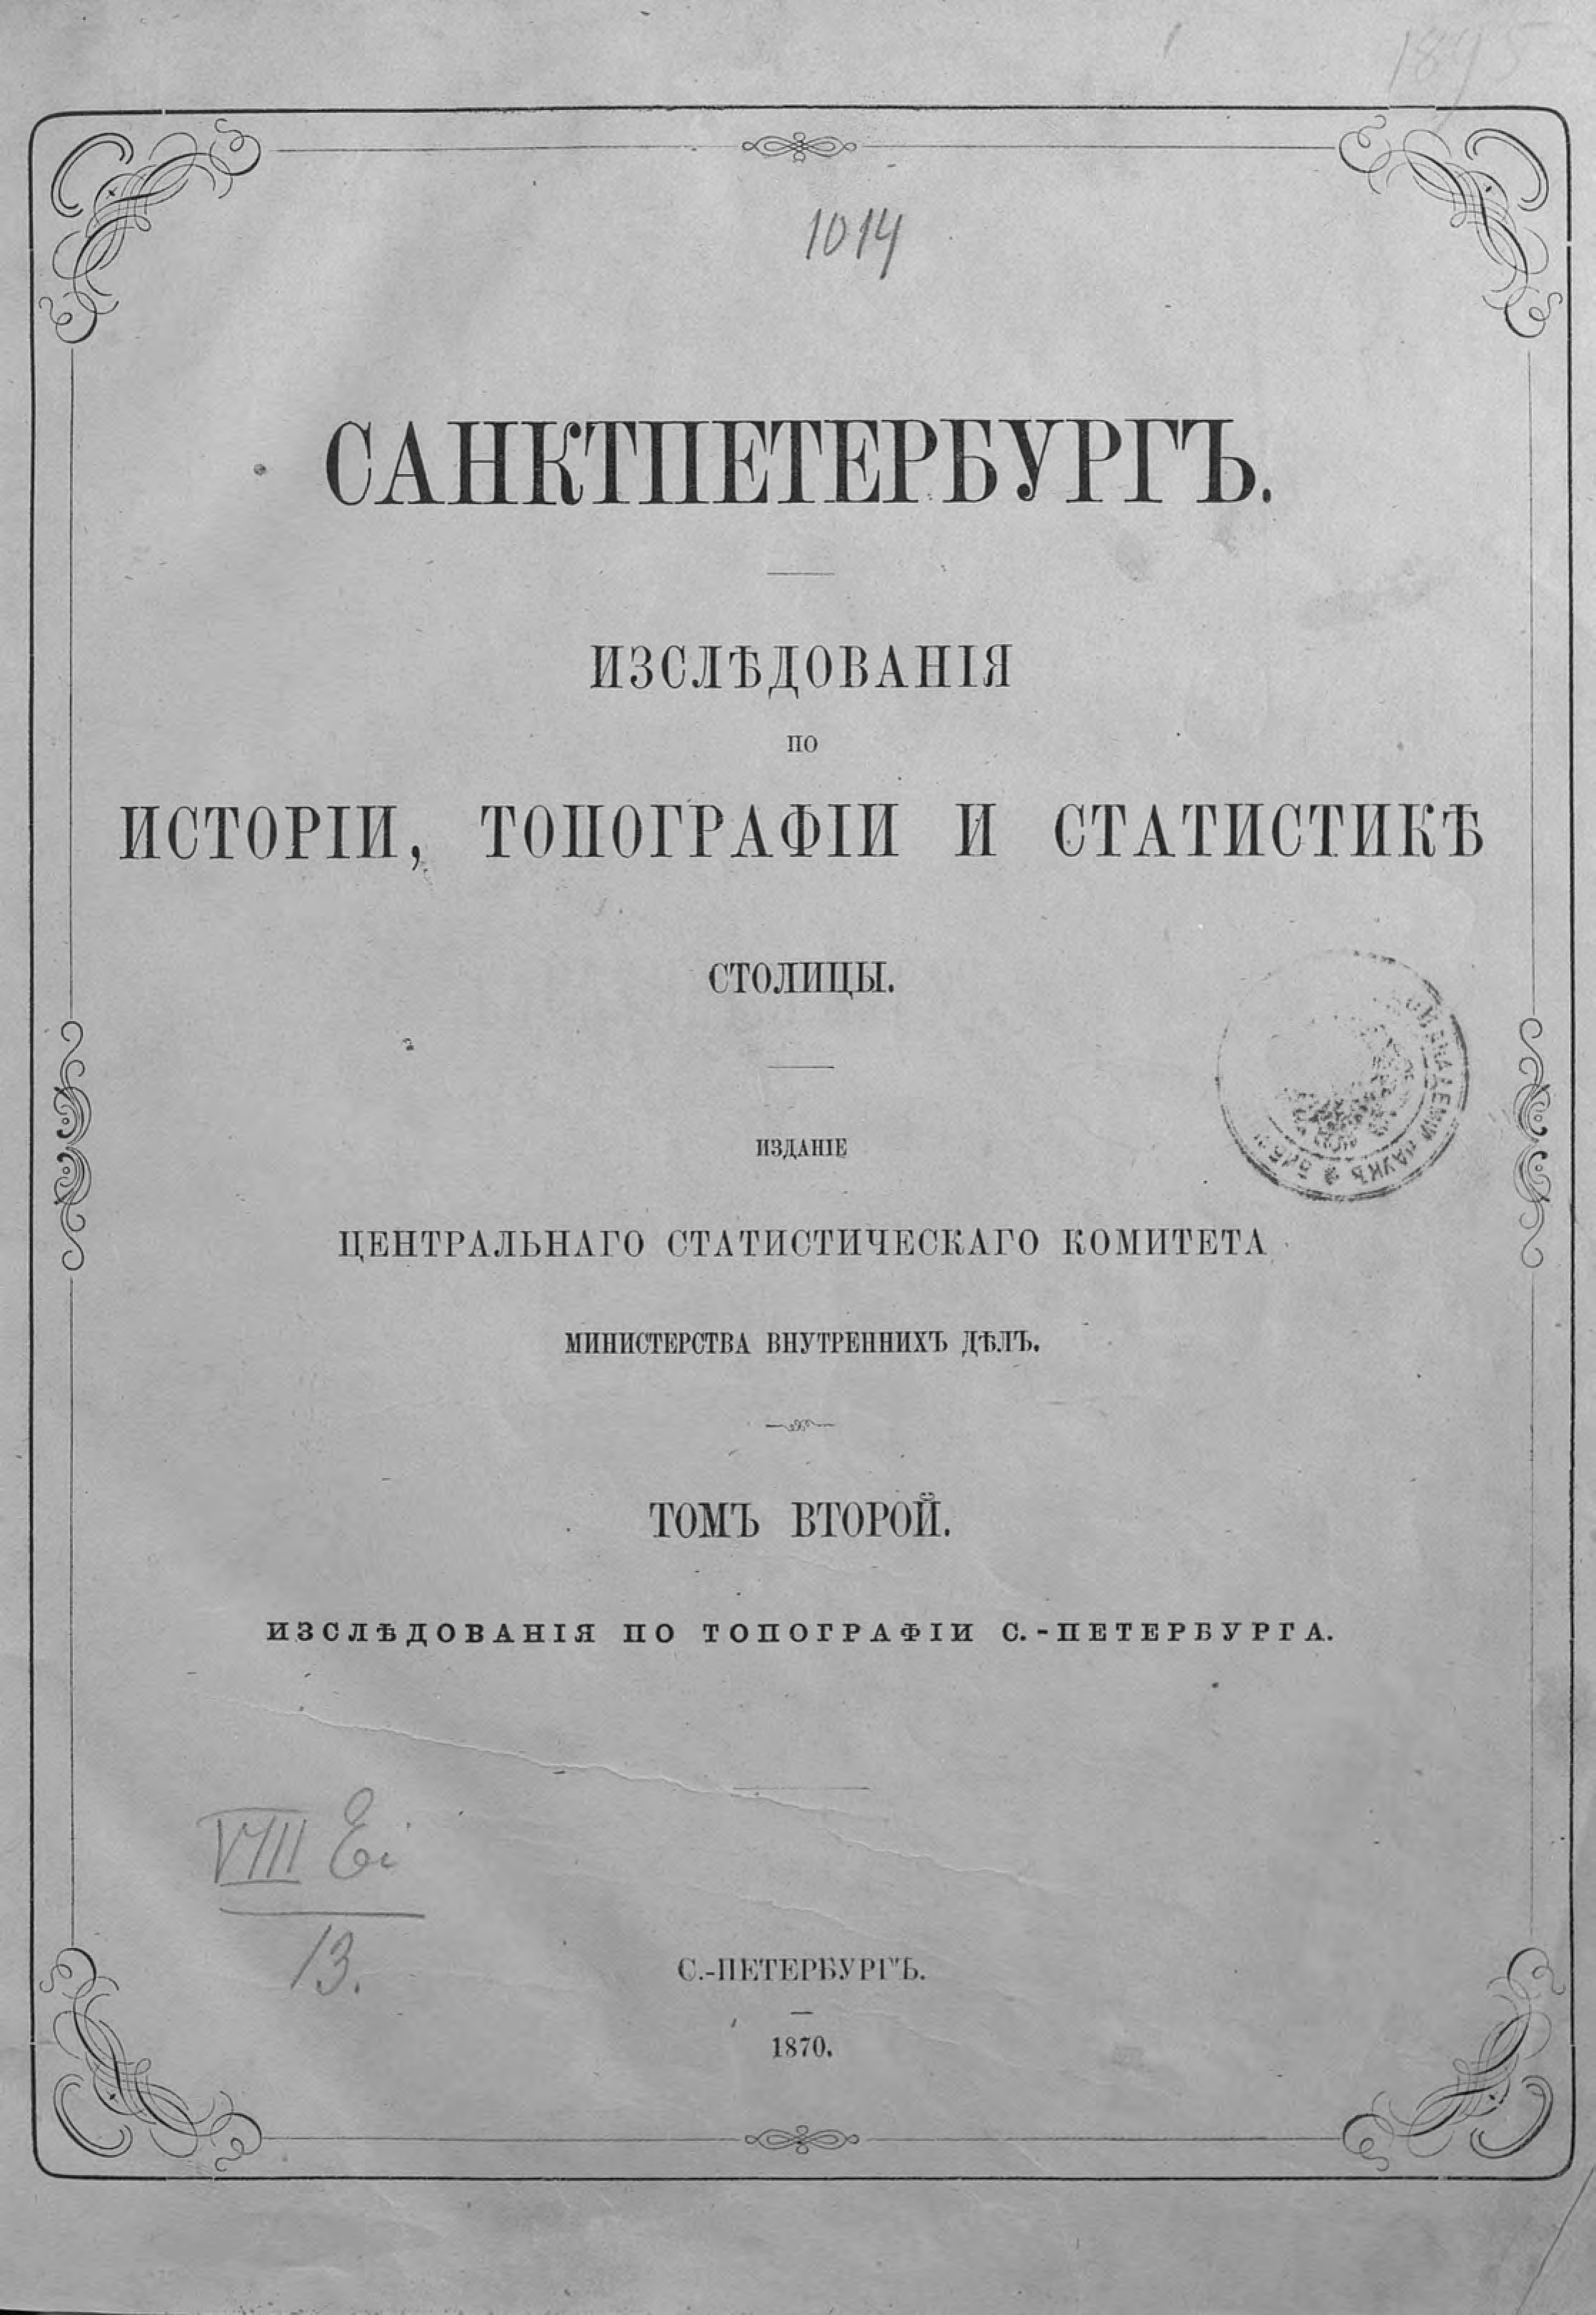 Коллектив авторов Санкт-Петербург коллектив авторов wyeth s repository of sacred music